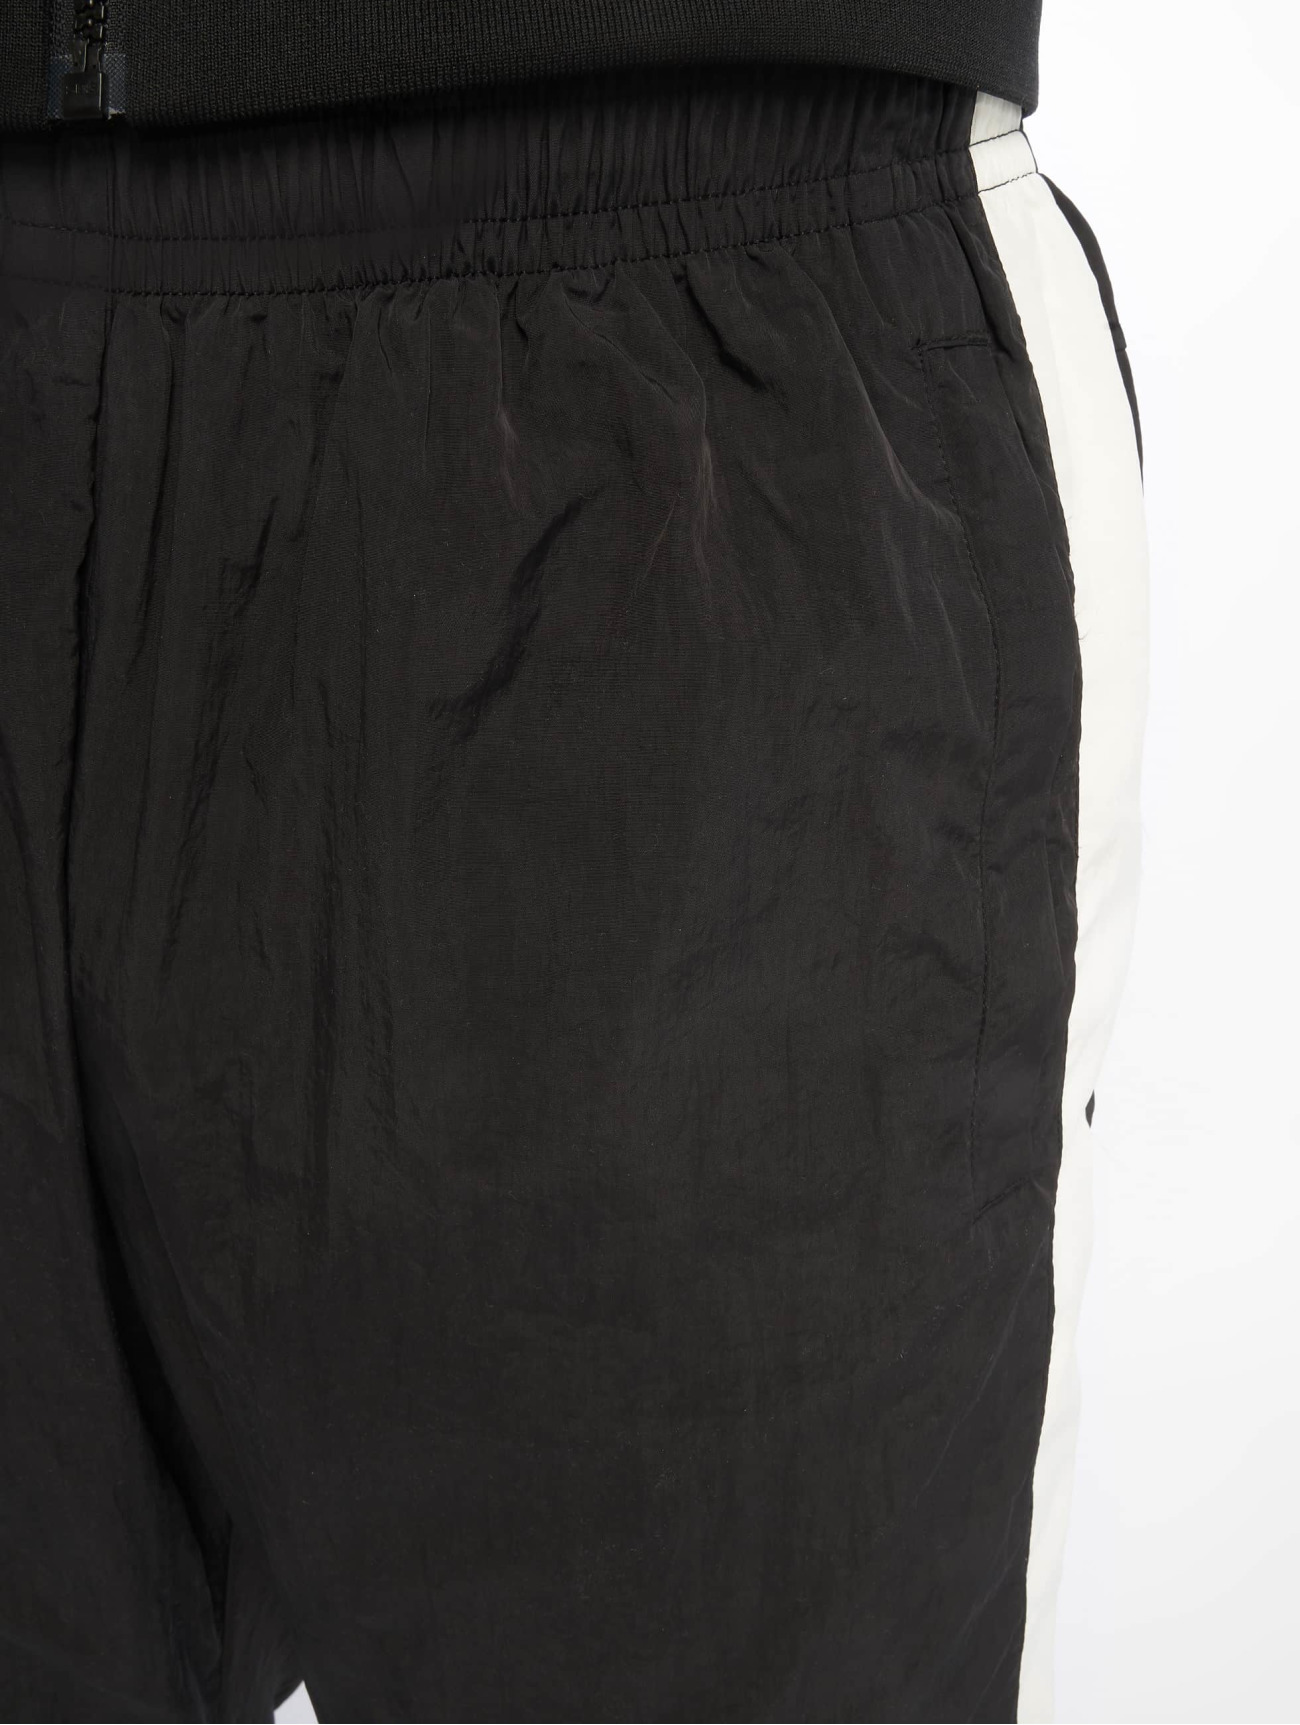 Urban Classics  Side Striped Crinkle  noir Homme Jogging  636550 Homme Pantalons & Shorts